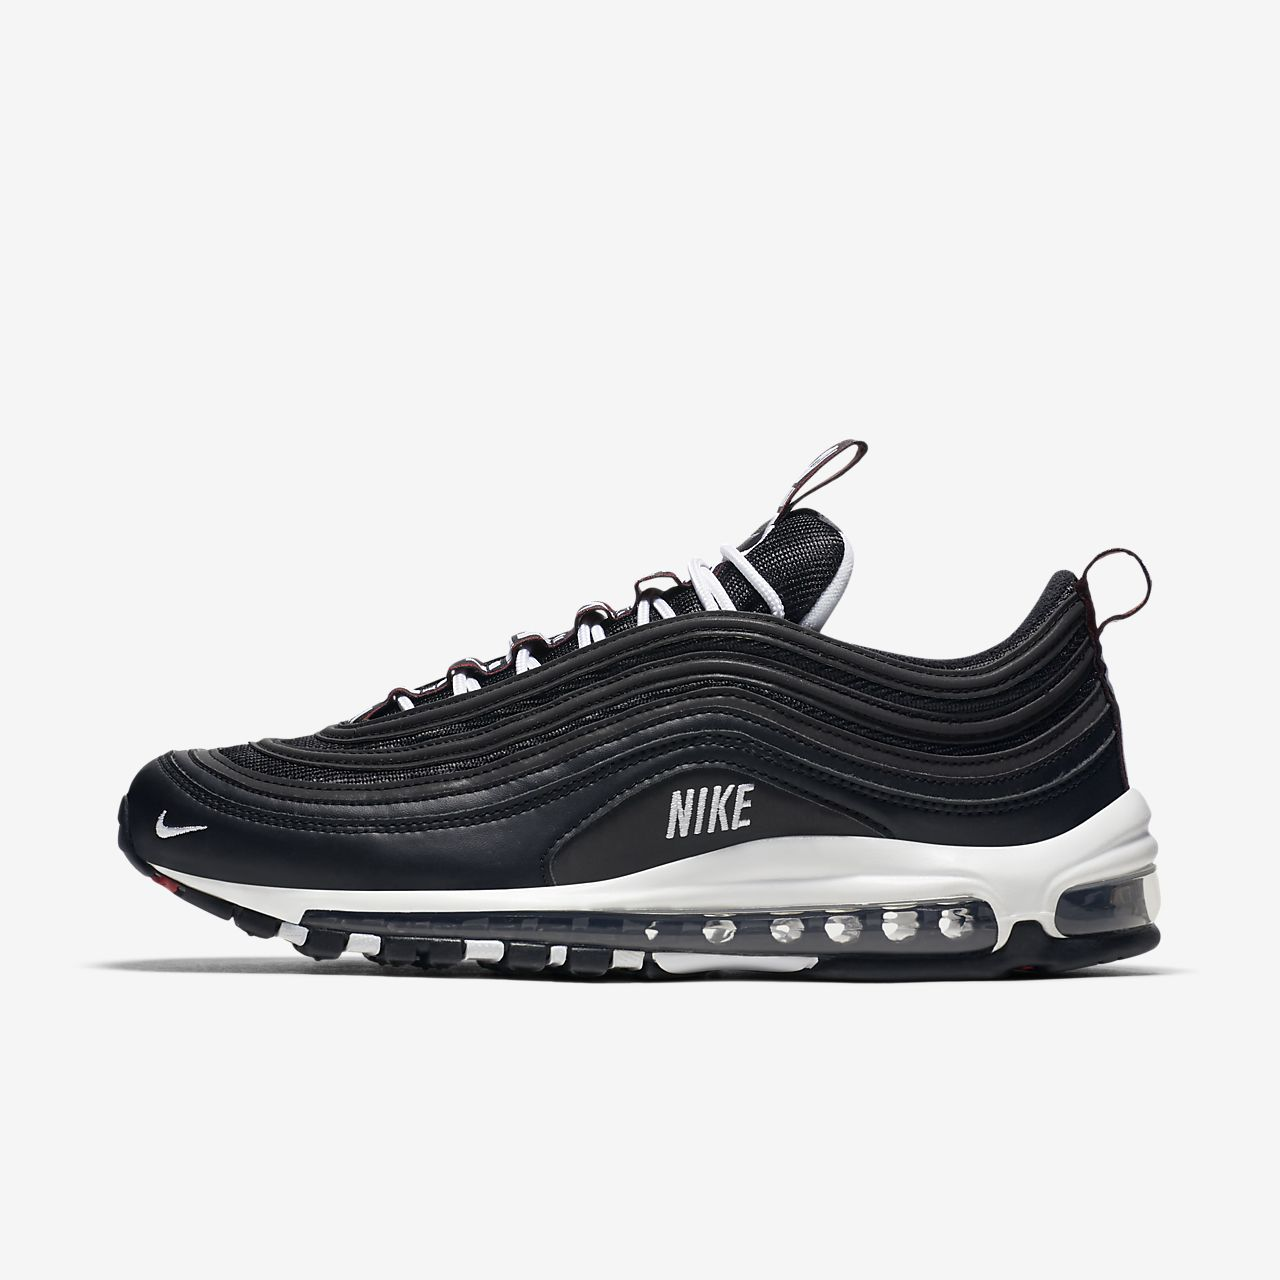 a5c0cd47577c Nike Air Max 97 Premium Men s Shoe. Nike.com